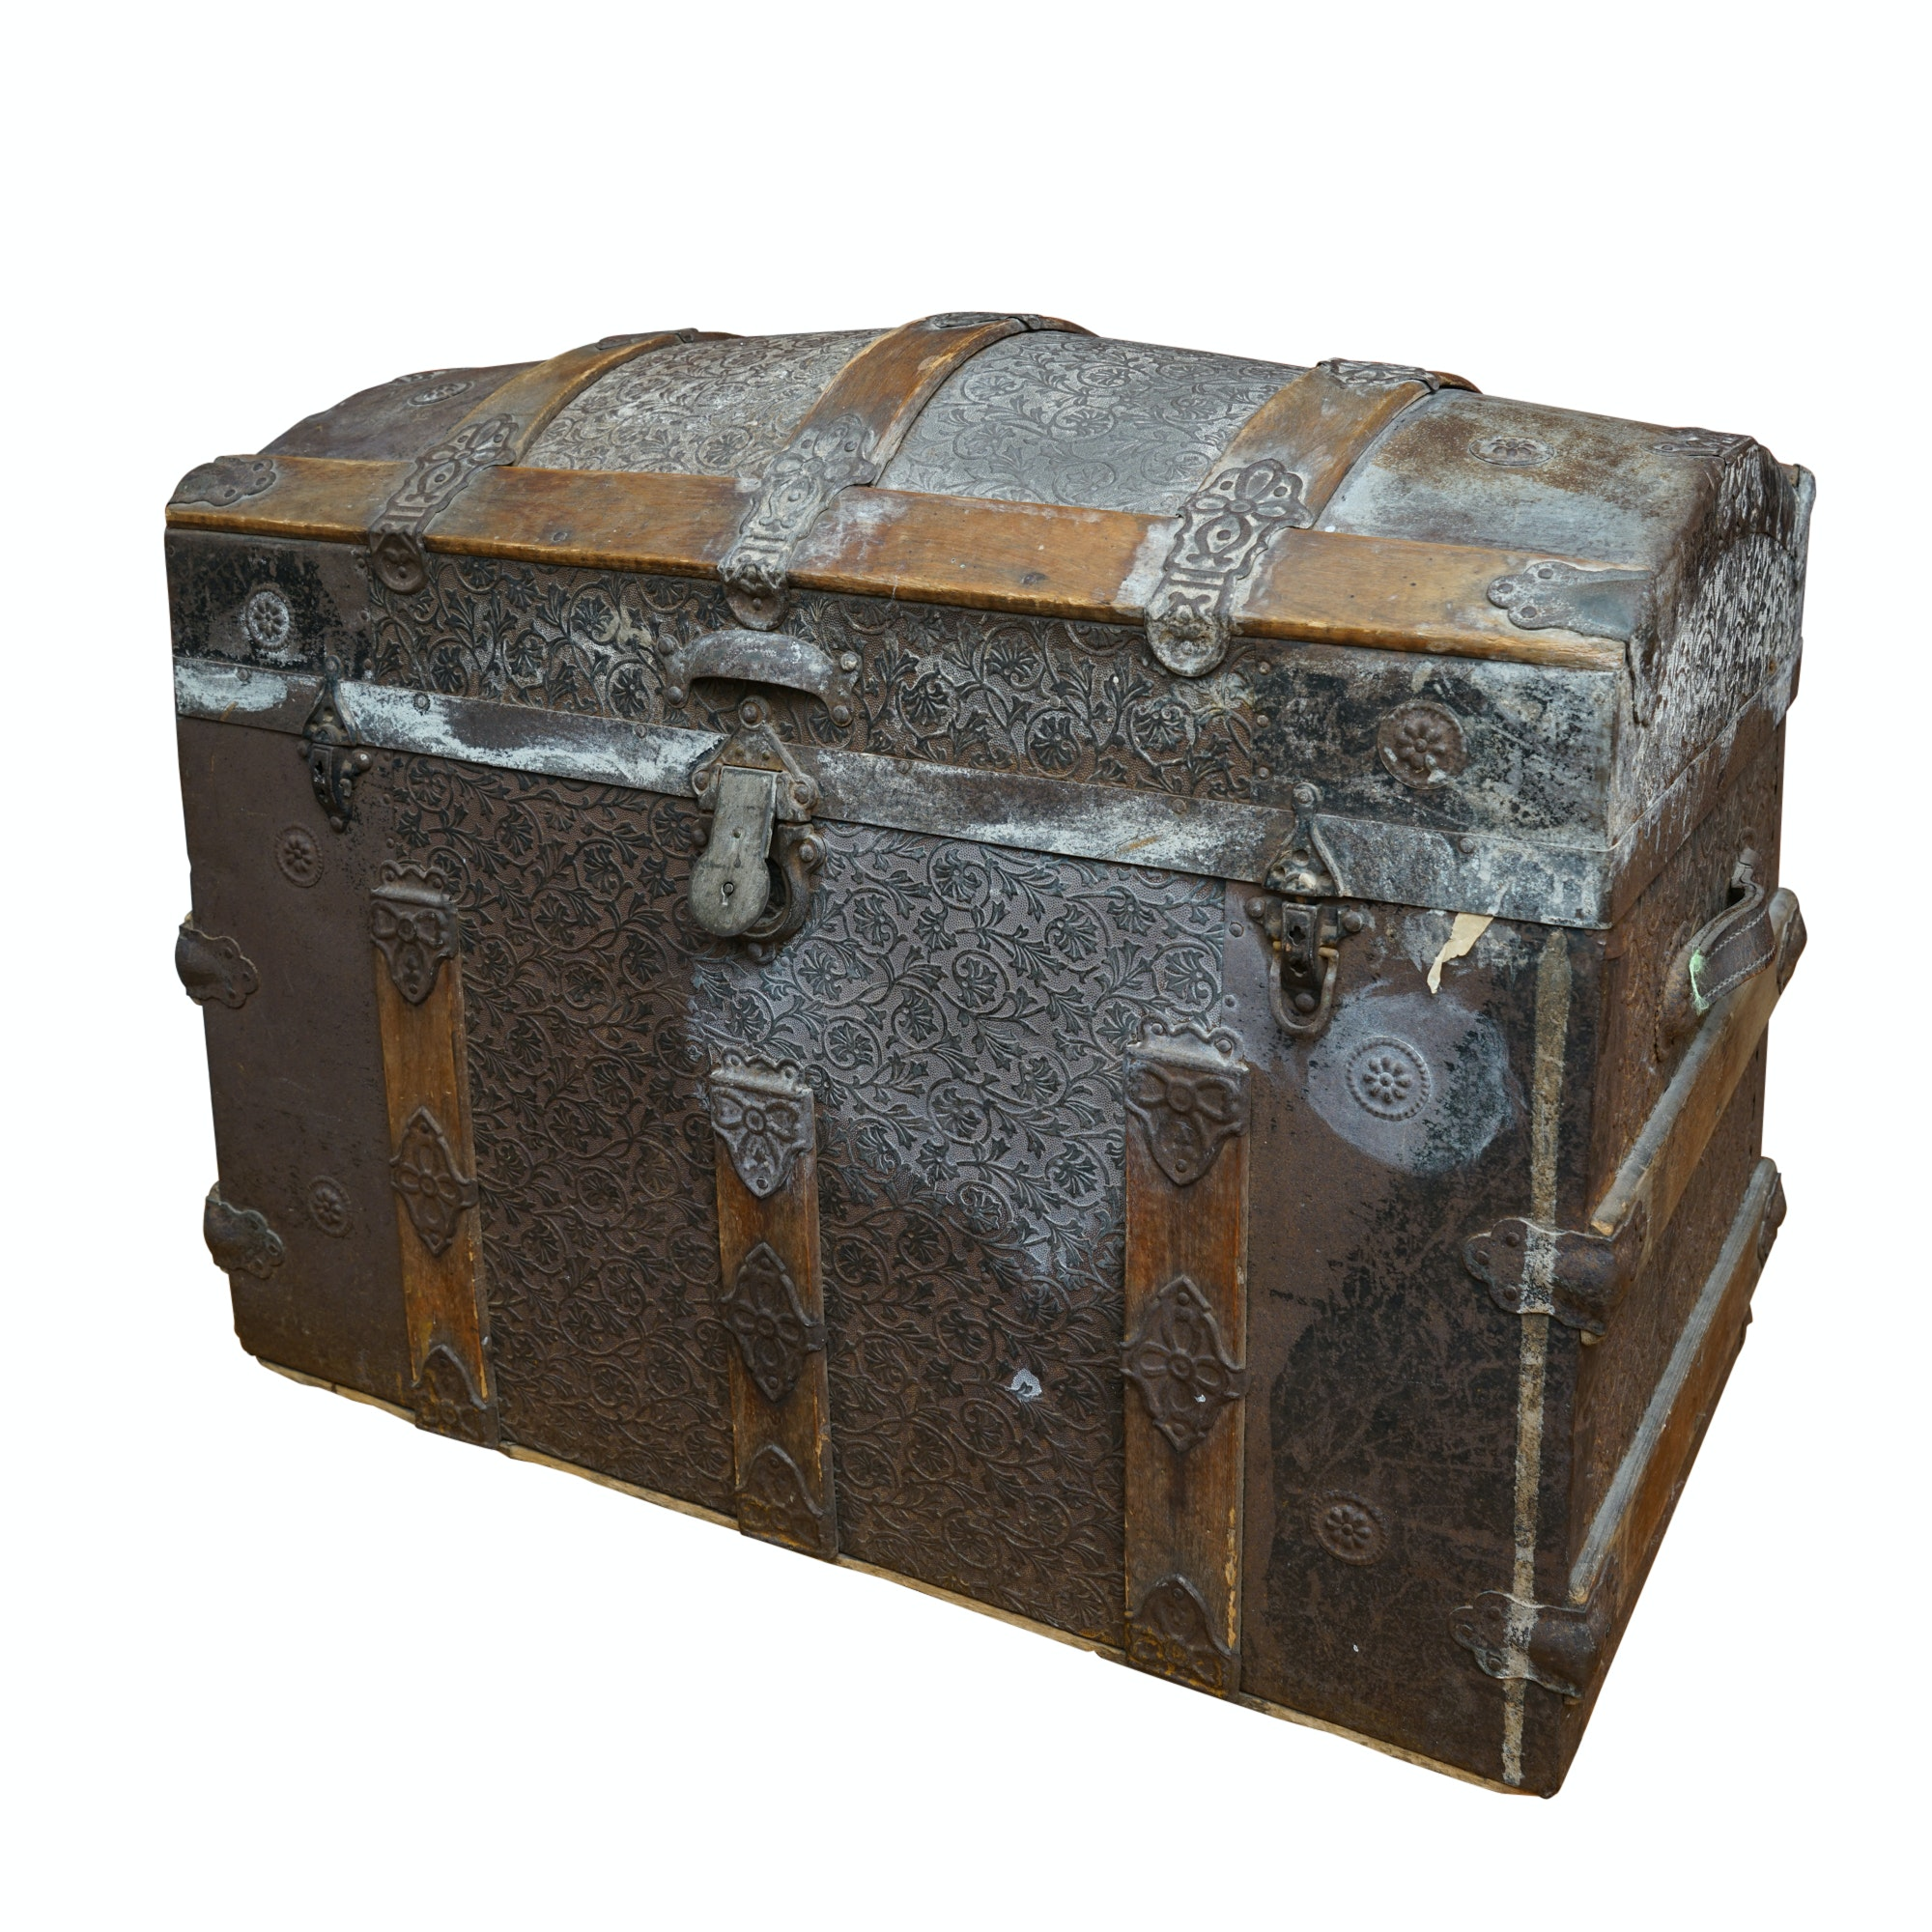 Antique Dome-Top Steamer Trunk with Insert